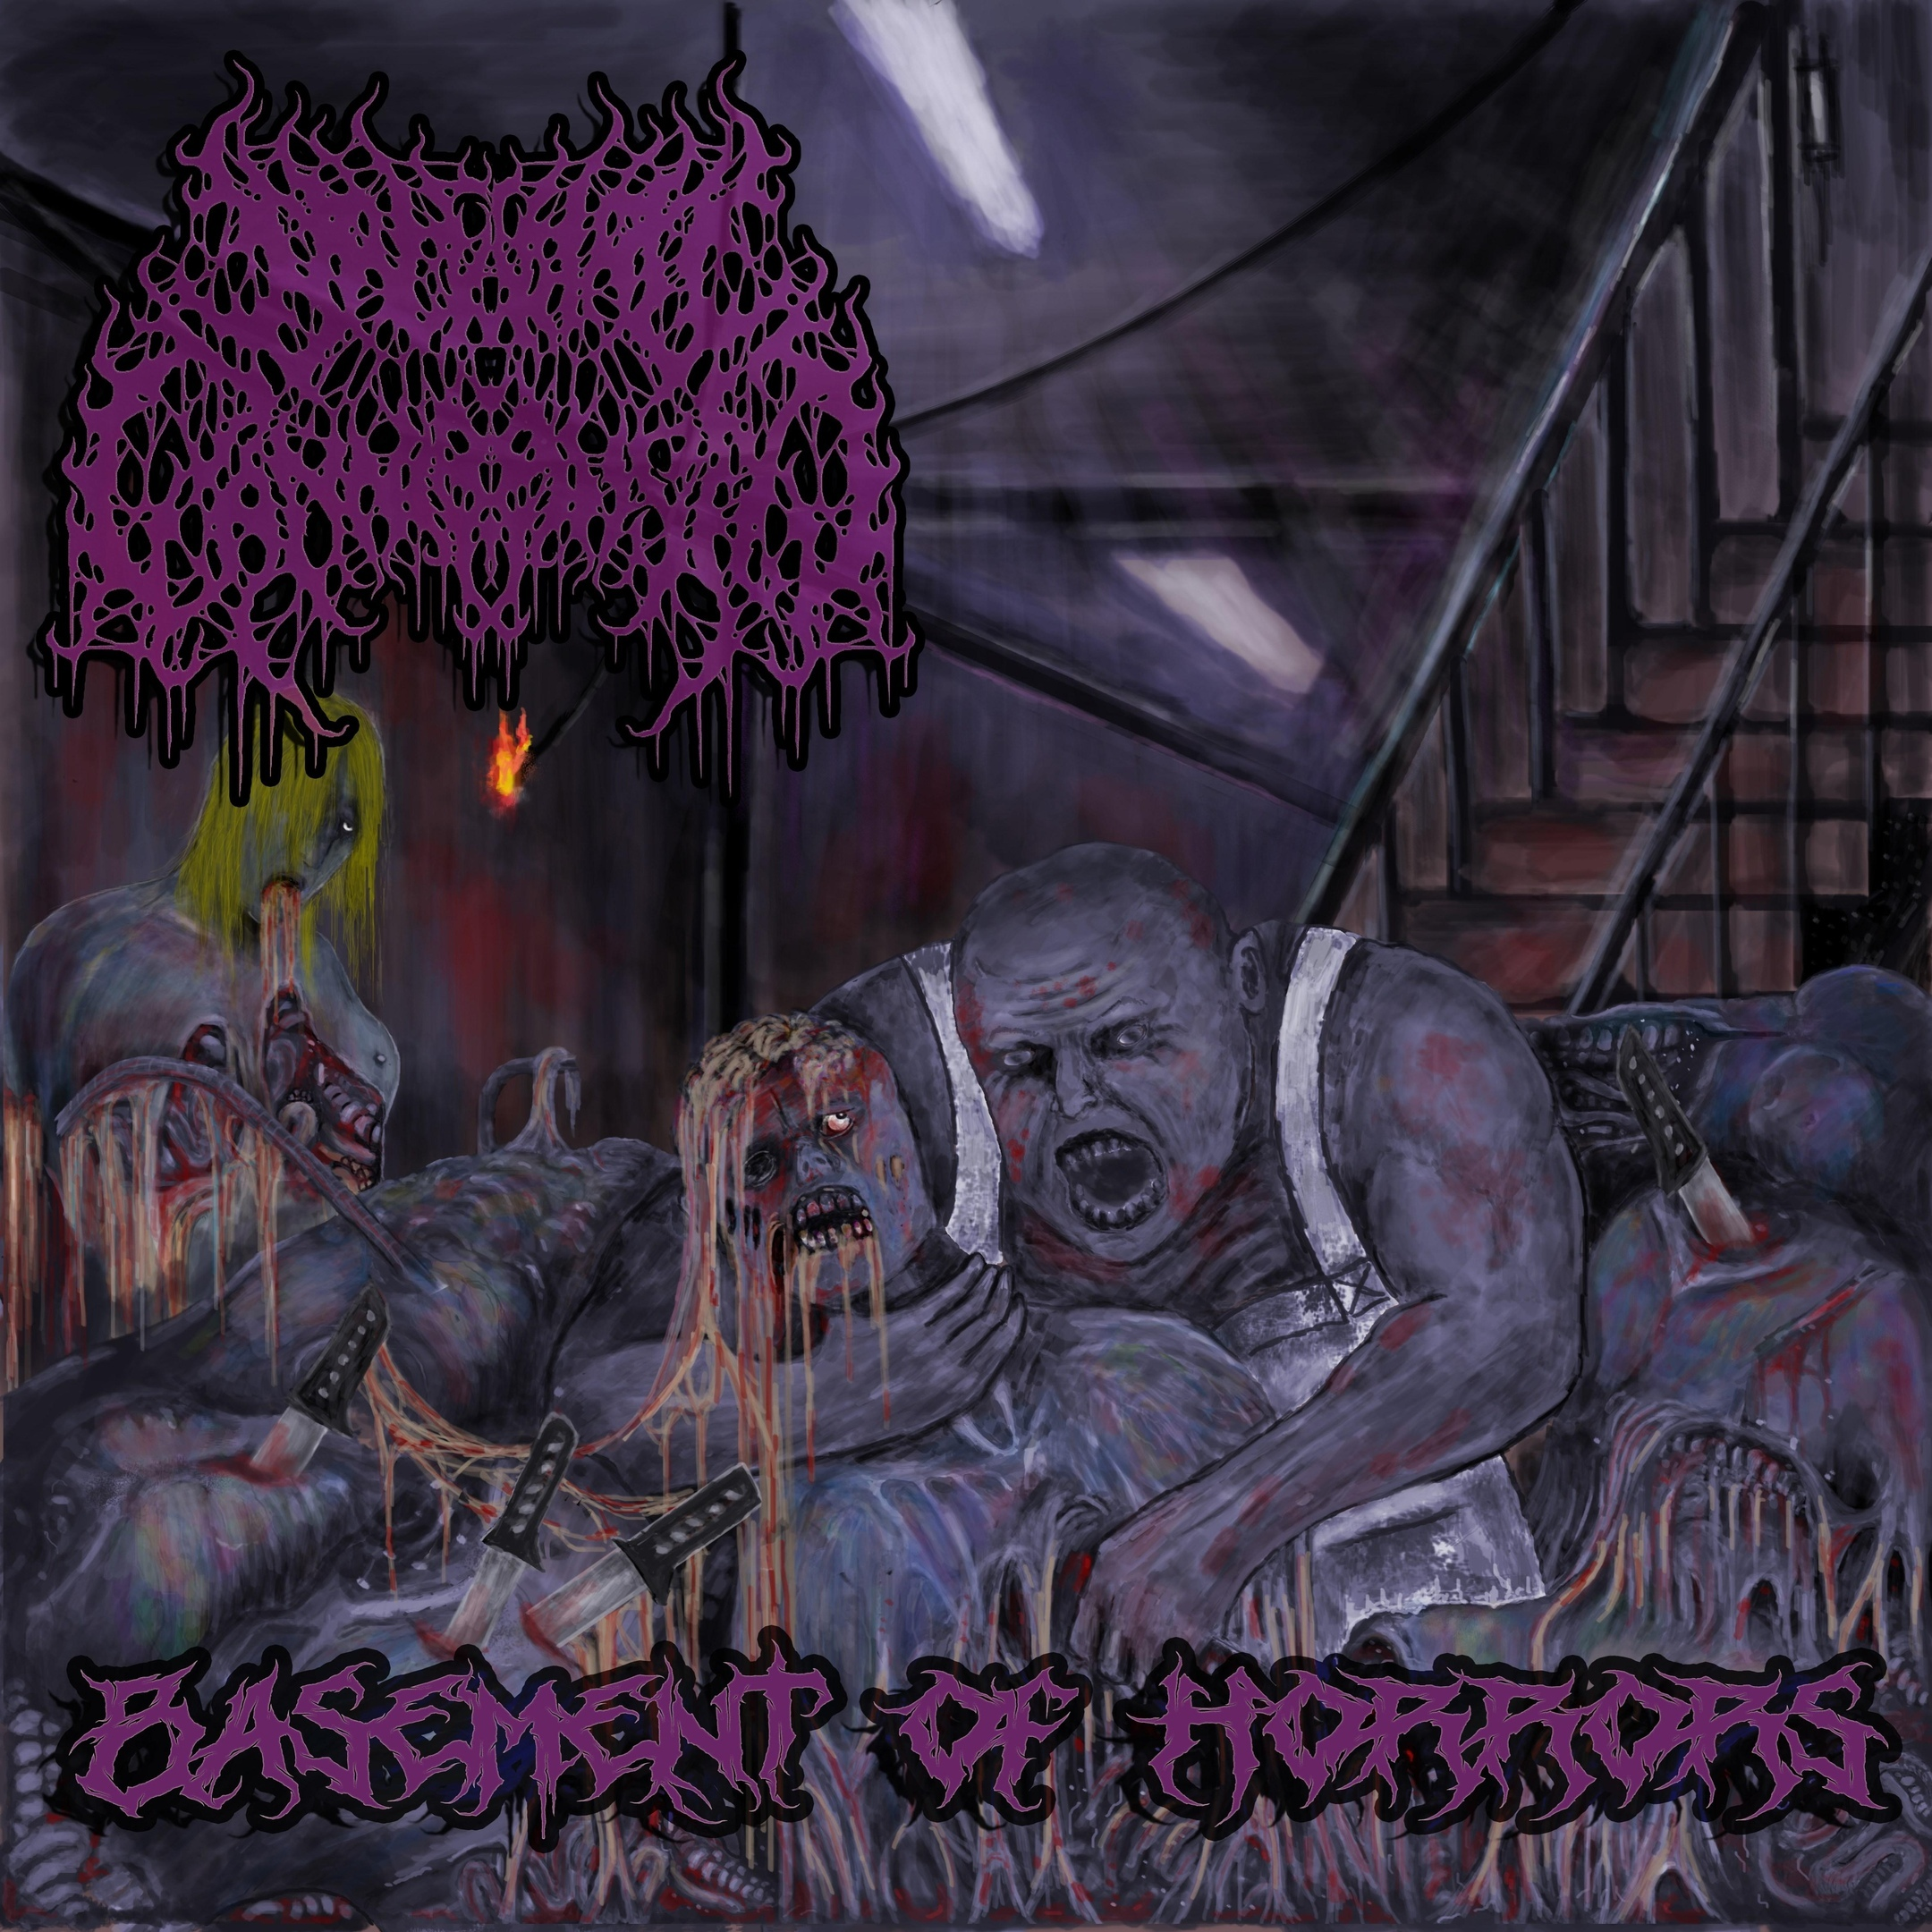 Backyard Cannibalism - Basement of Horrors [EP]